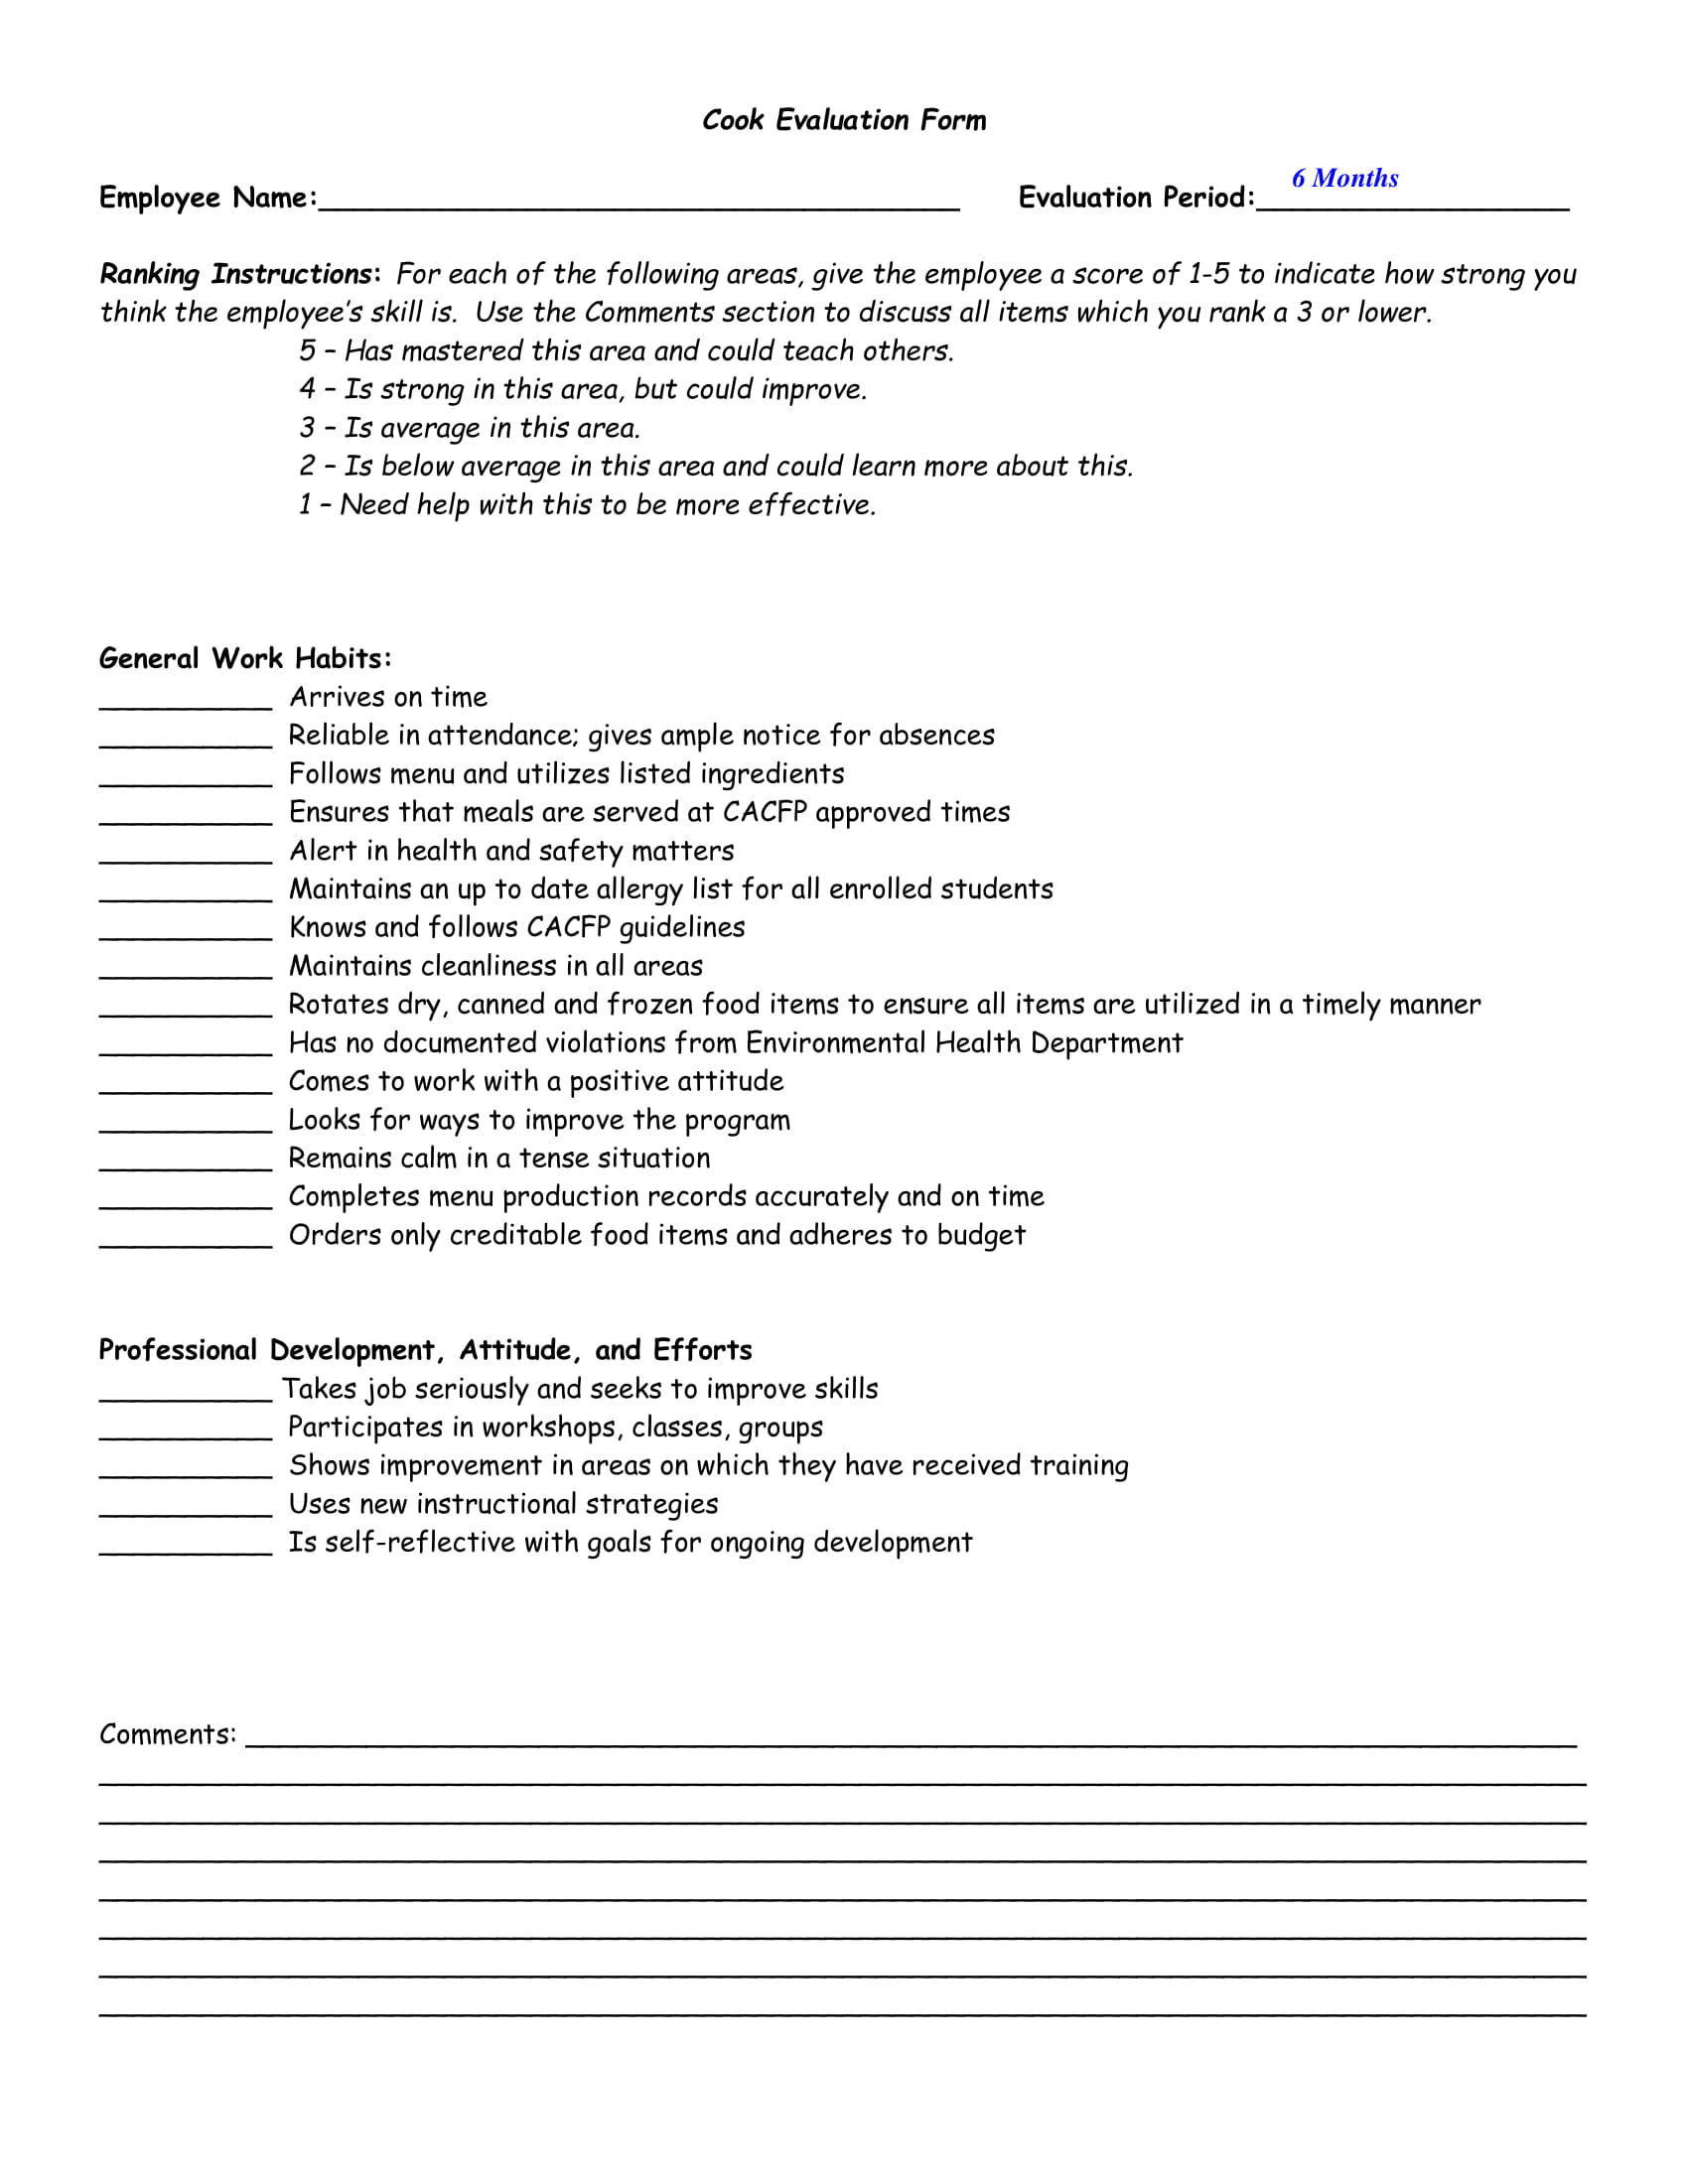 restaurant cook evaluation form 1